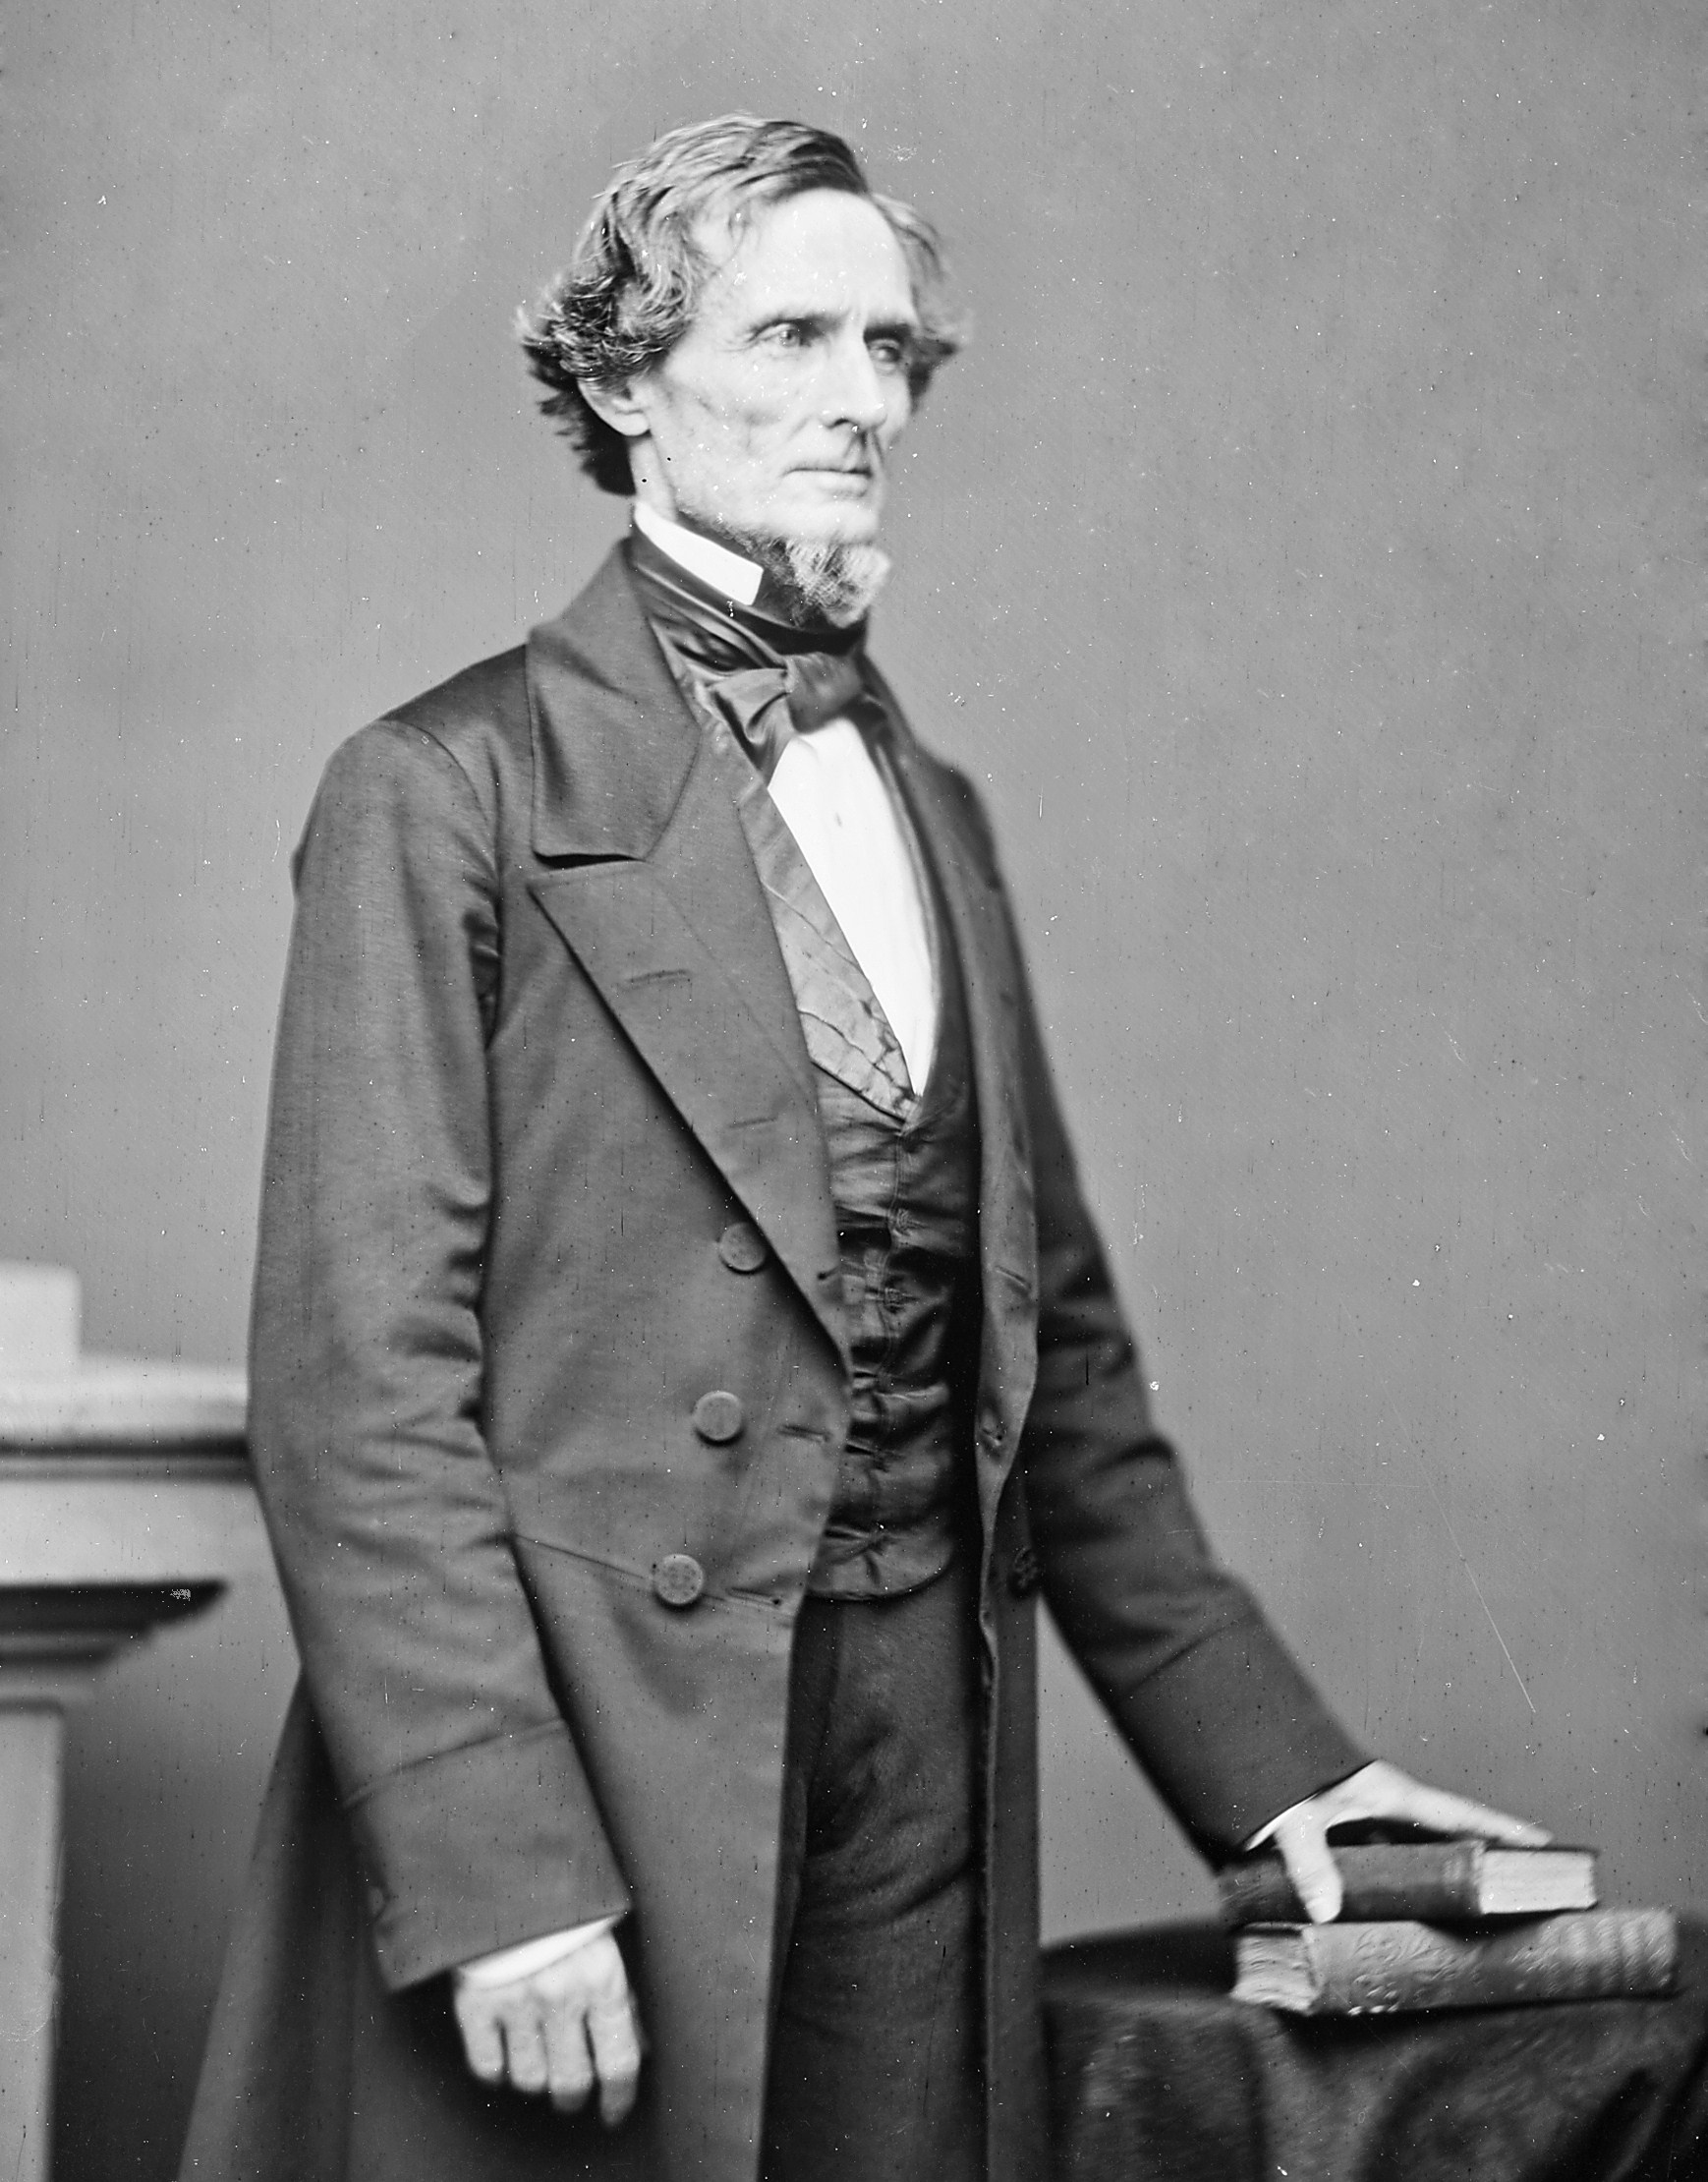 Confederate President Jefferson Davis. Courtesy of the Library of Congress.